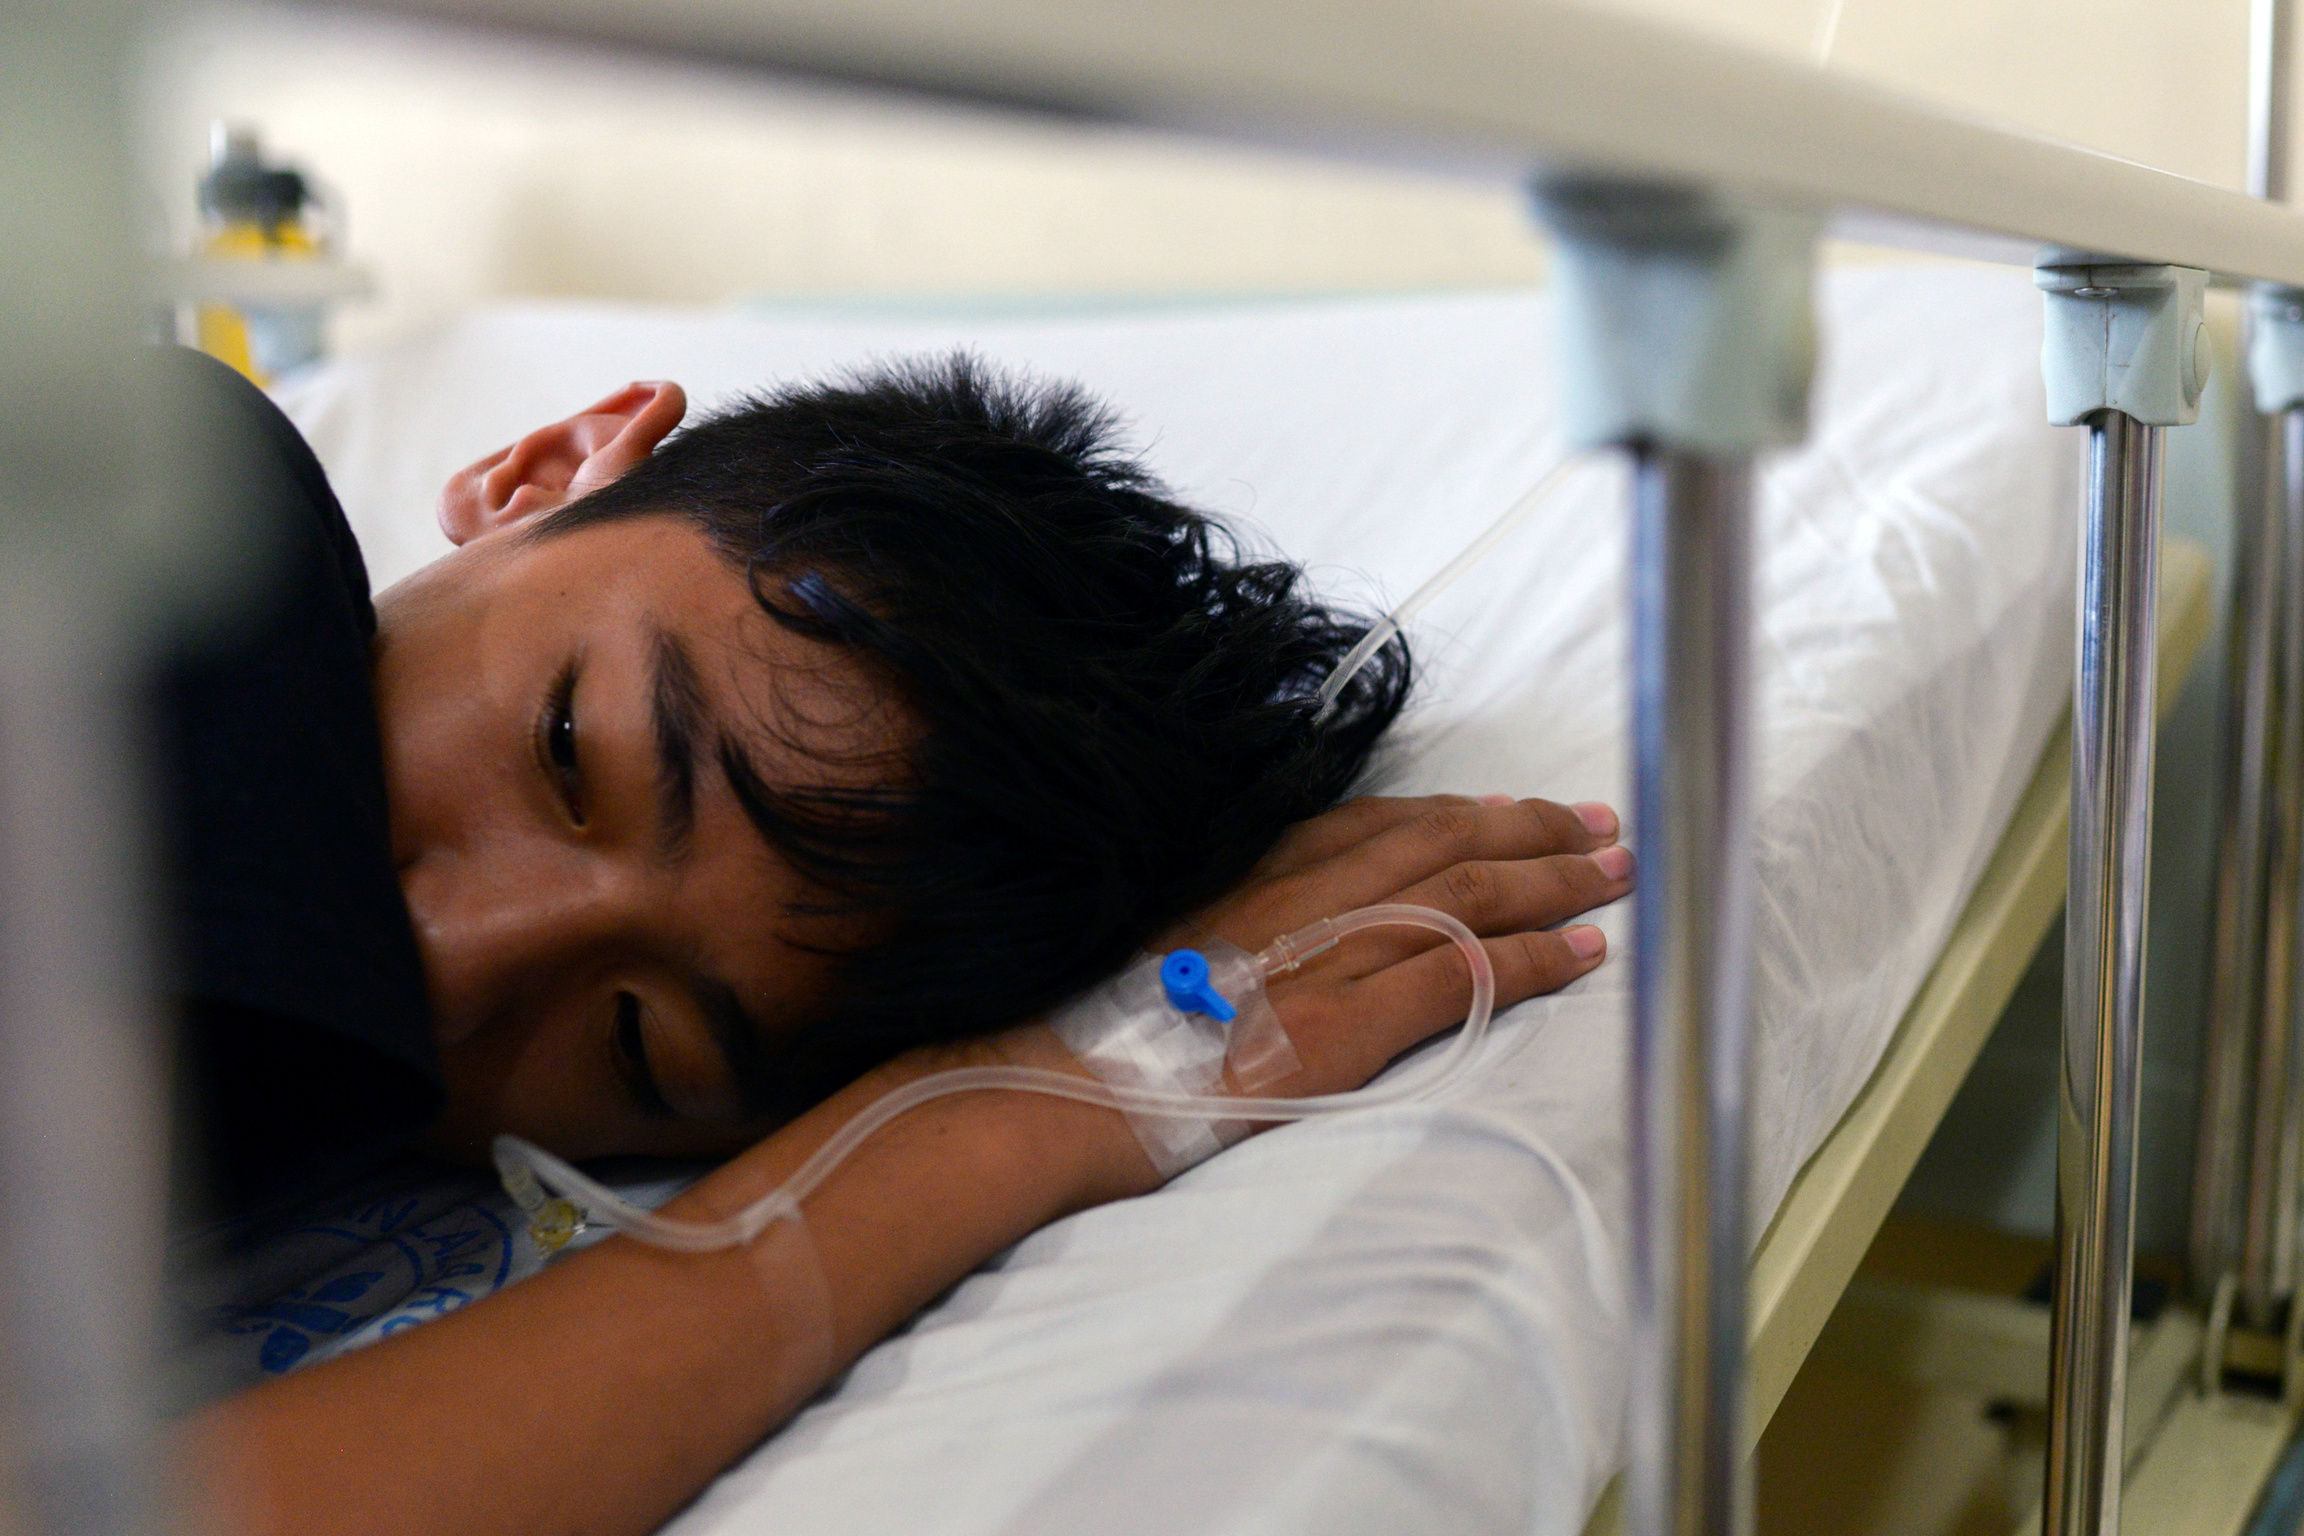 A boy lays down in a hospital bed.